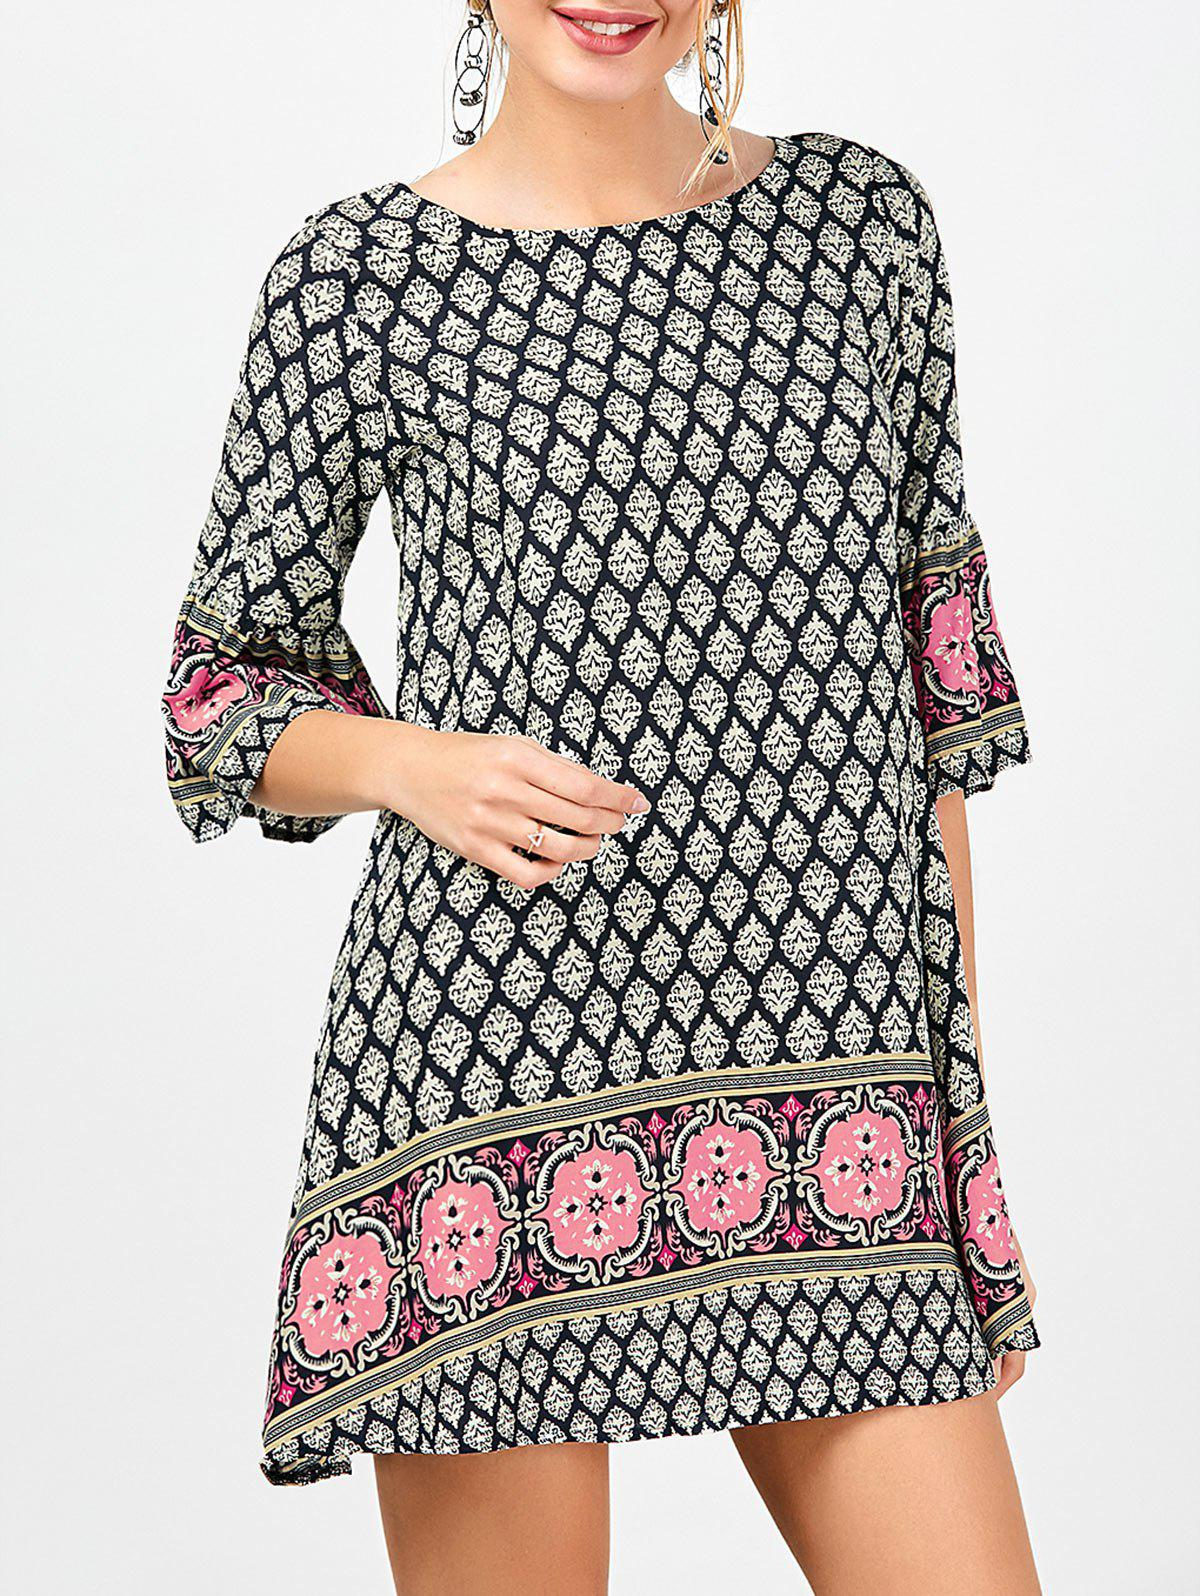 Printed Criss-Cross Mini Bohemian Dress - COLORMIX S